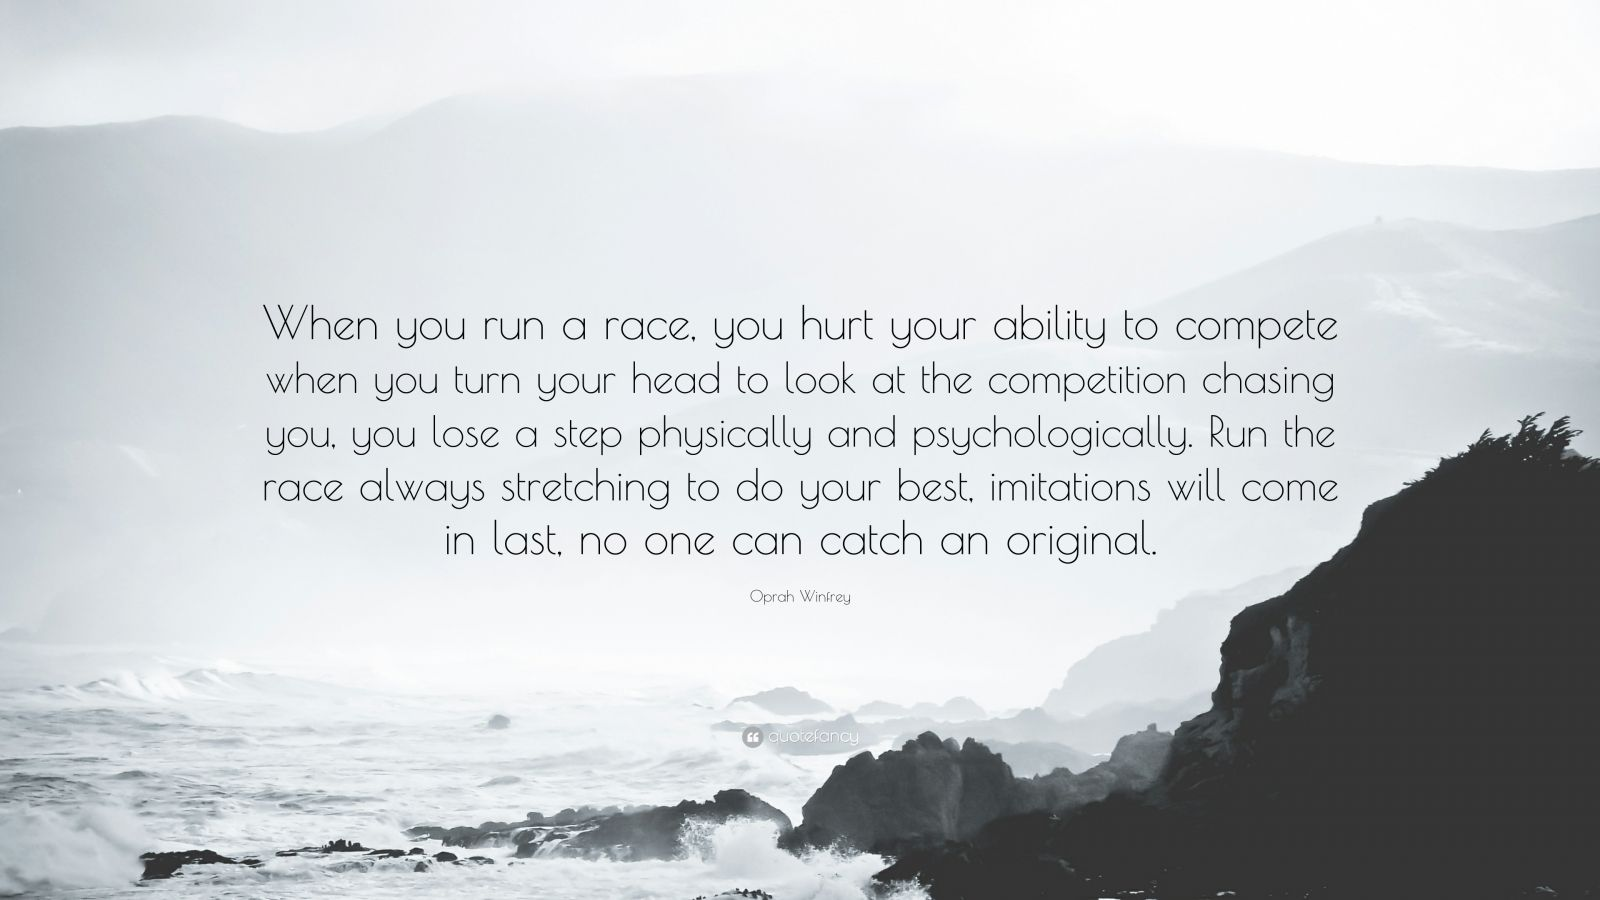 """Oprah Winfrey Quote: """"When you run a race, you hurt your ability to compete when you turn your head to look at the competition chasing you, you lose a step physically and psychologically. Run the race always stretching to do your best, imitations will come in last, no one can catch an original."""""""